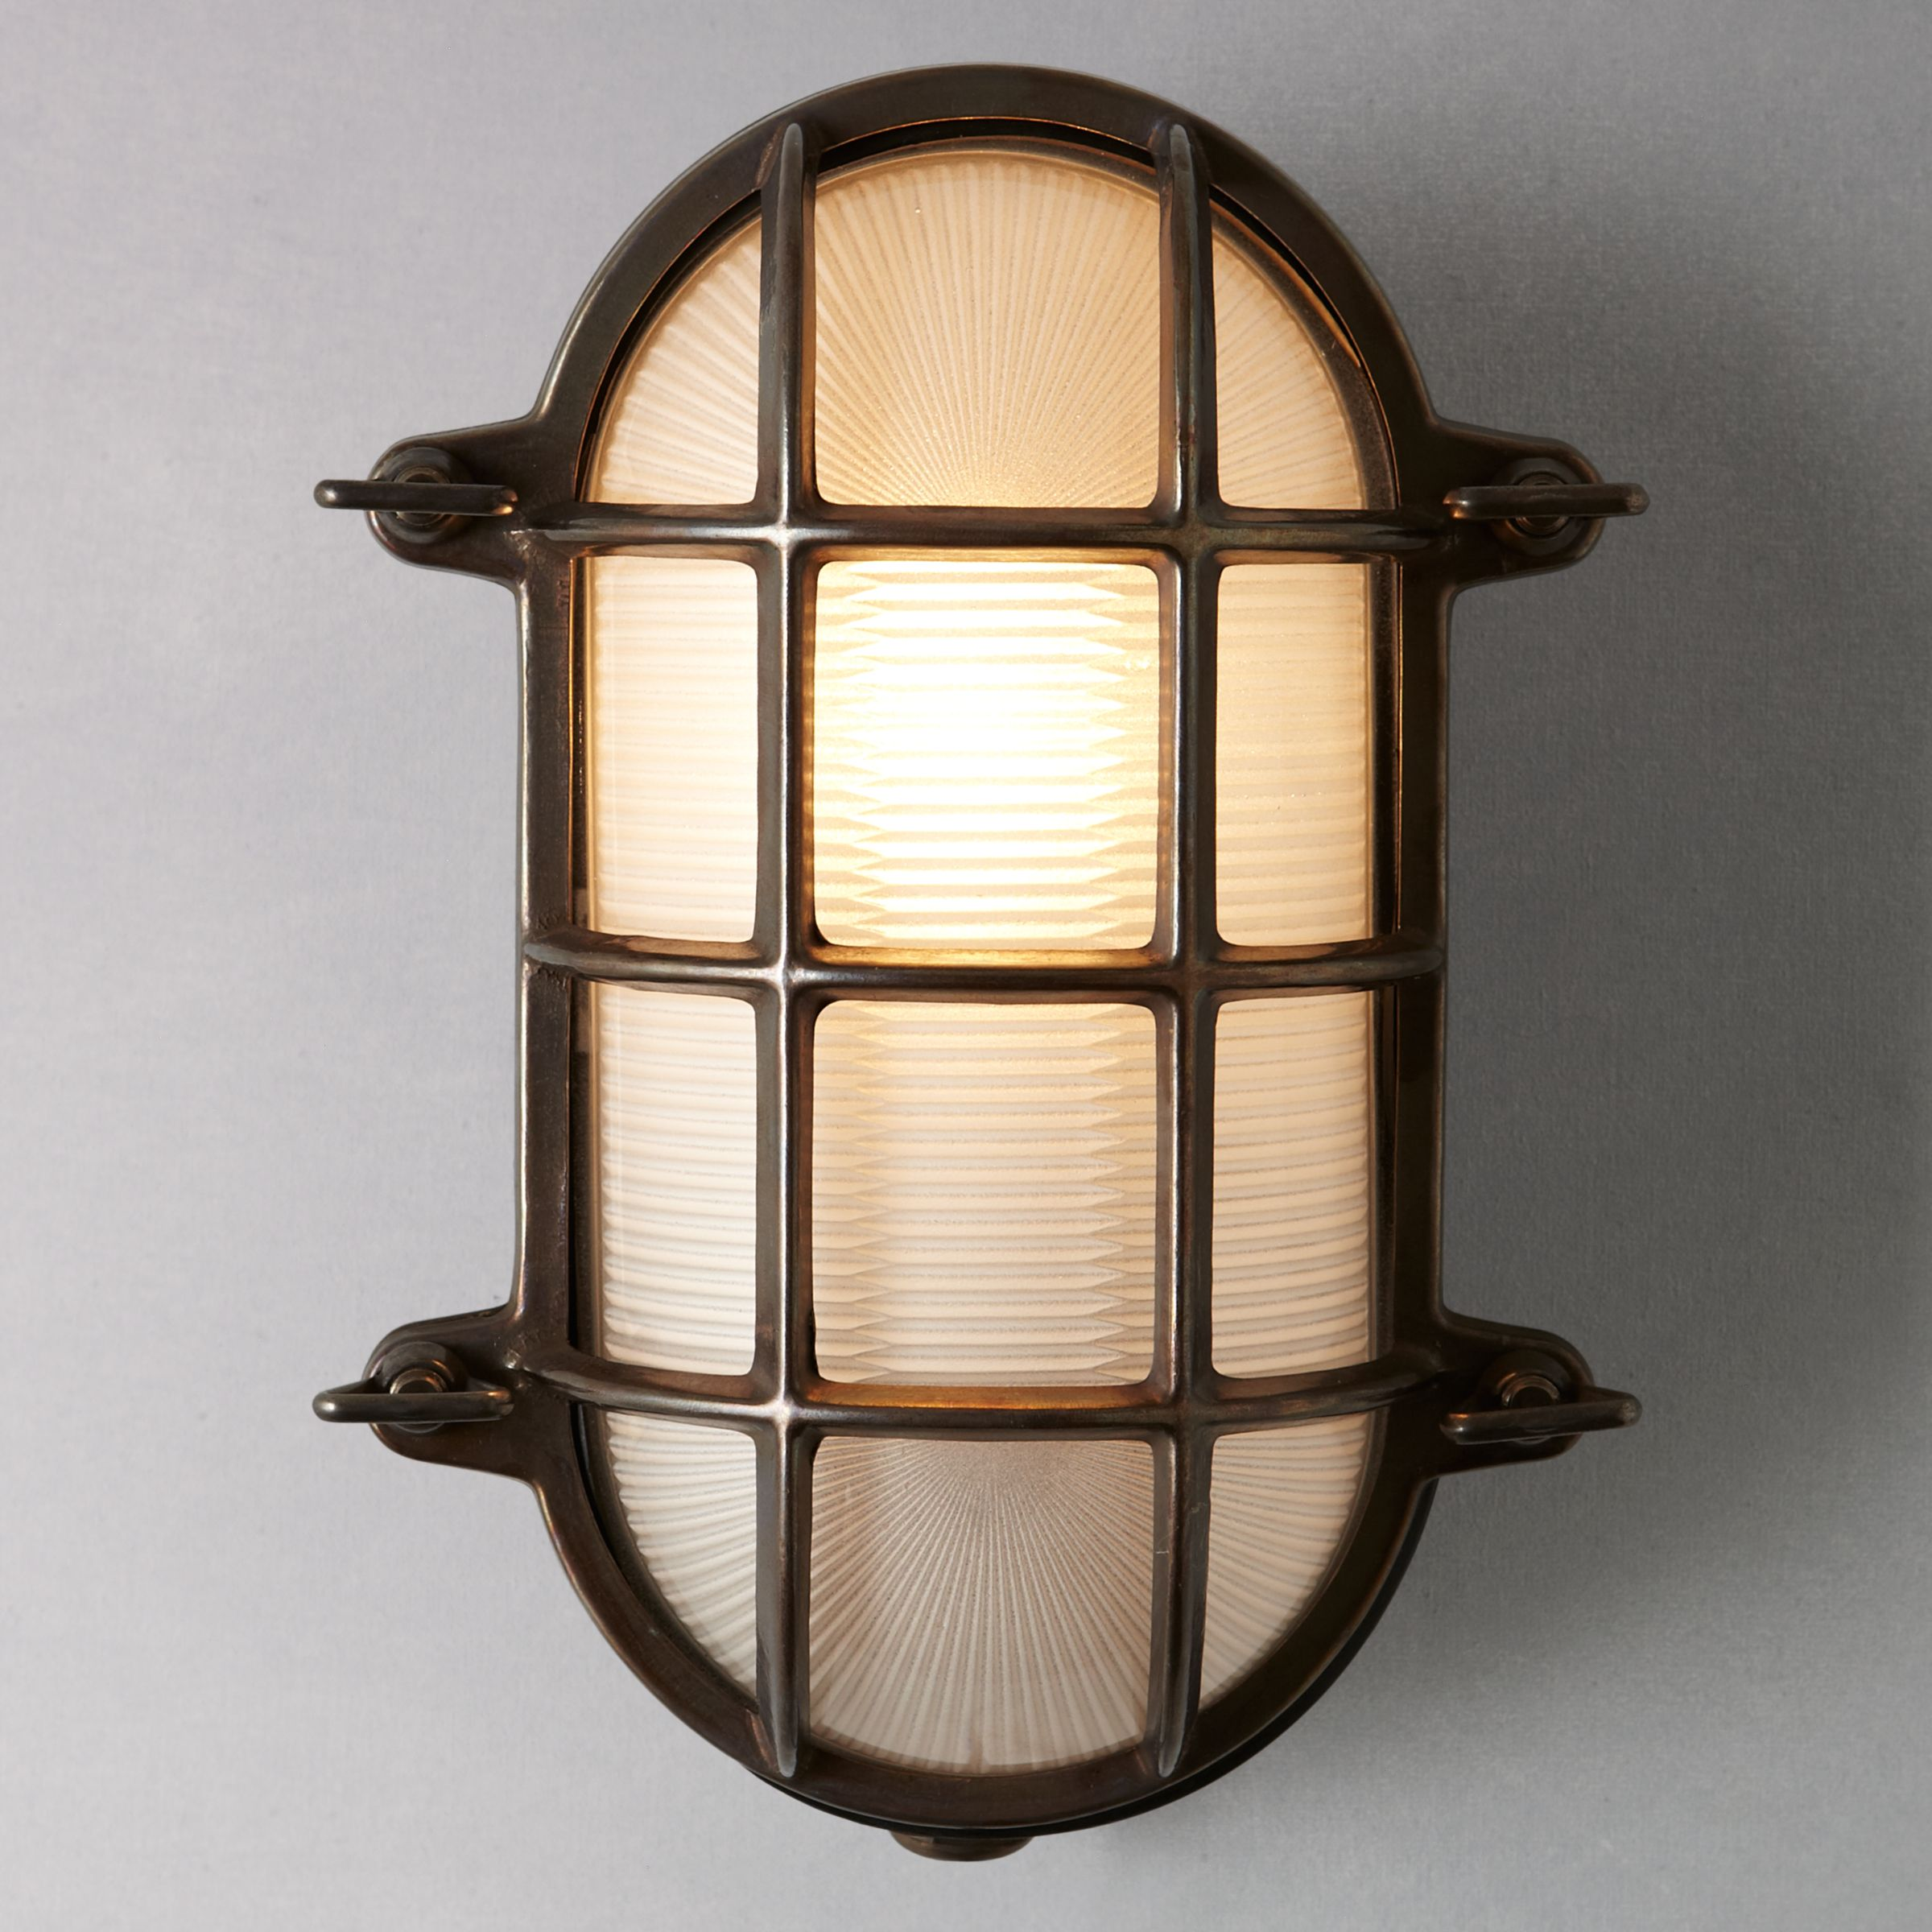 Brass Bulkhead Wall Lights : Buy Davey Lighting Bulkhead Weathered Wall Light, Brass John Lewis